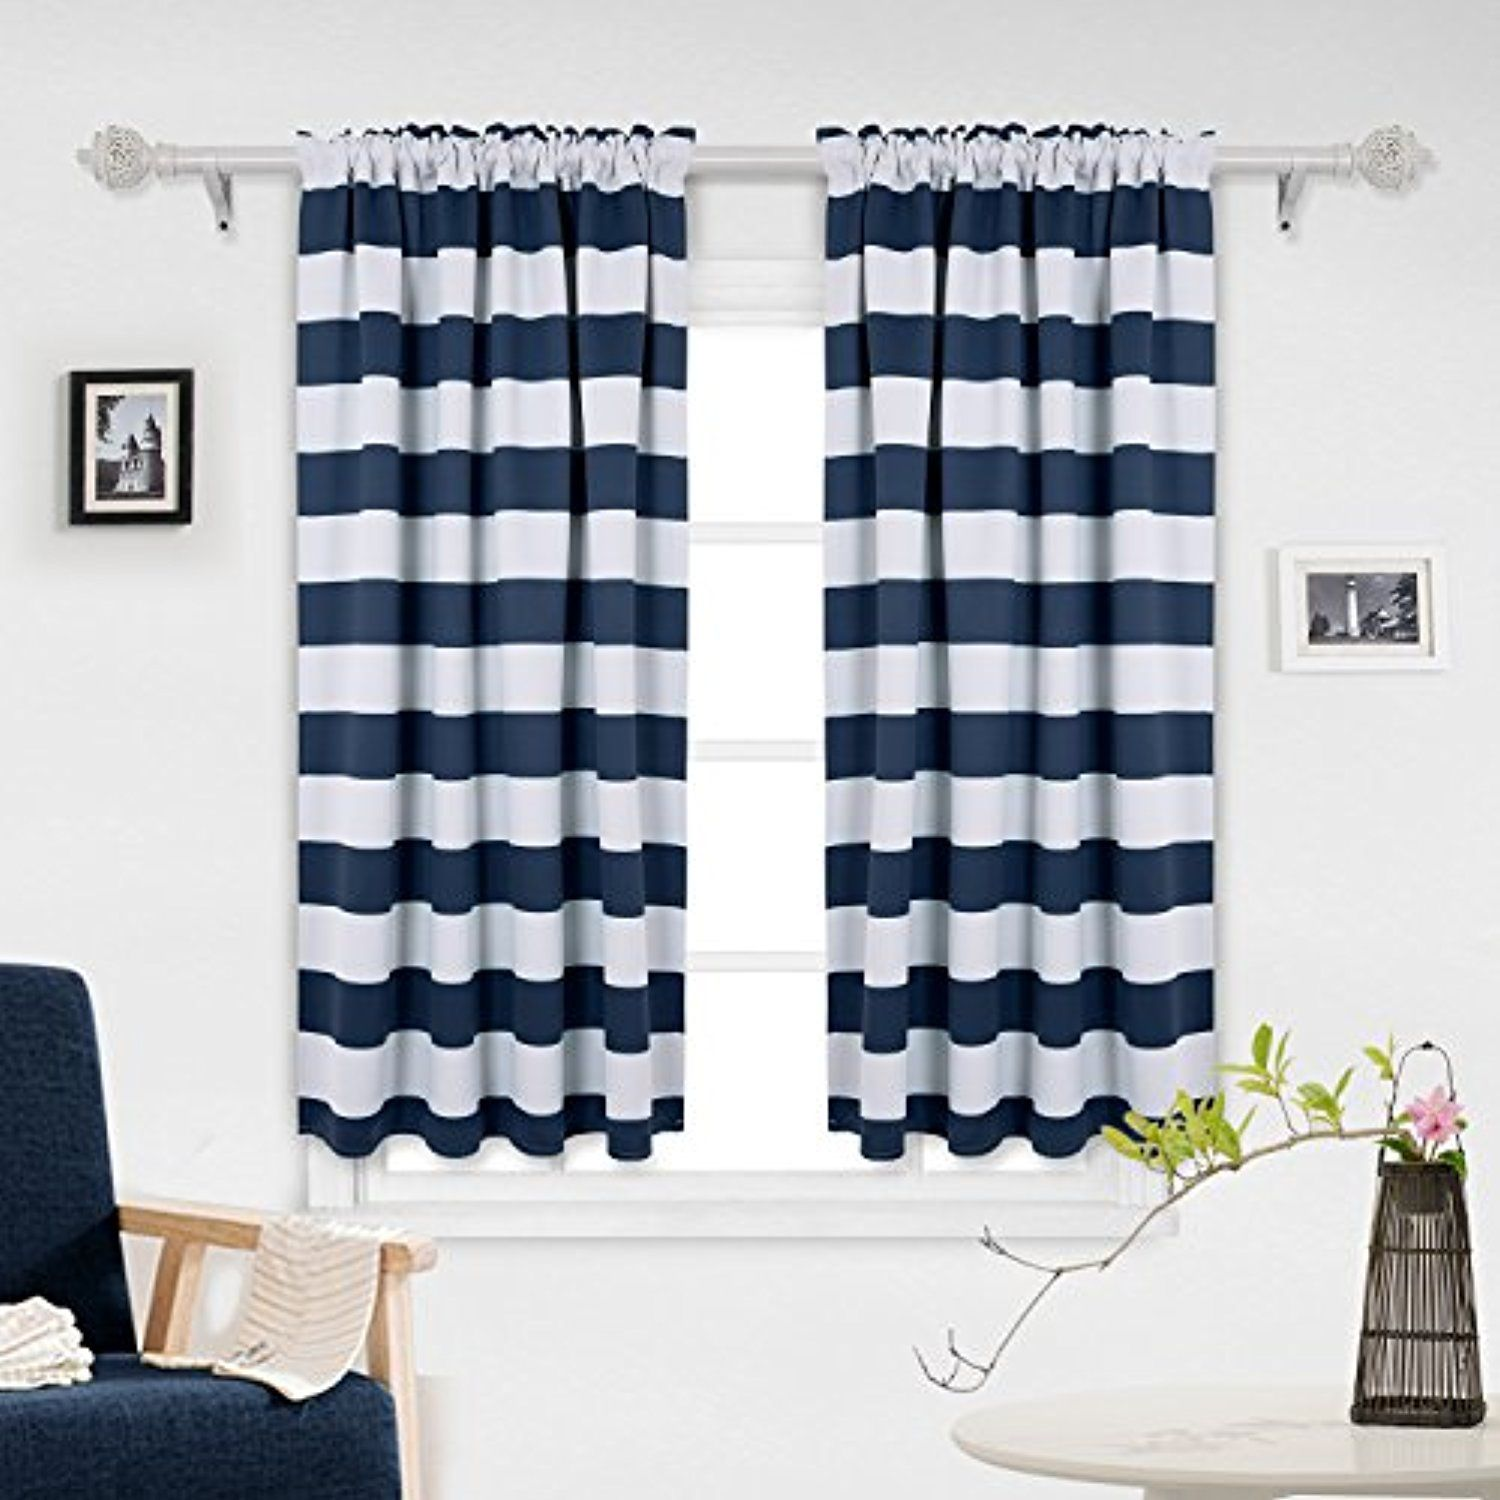 Deconovo Navy Blue Striped Blackout Curtains Rod Pocket Nautical Navy And Greyish White Striped Curtains For Kids Room 42w Kids Curtains Striped Room Curtains